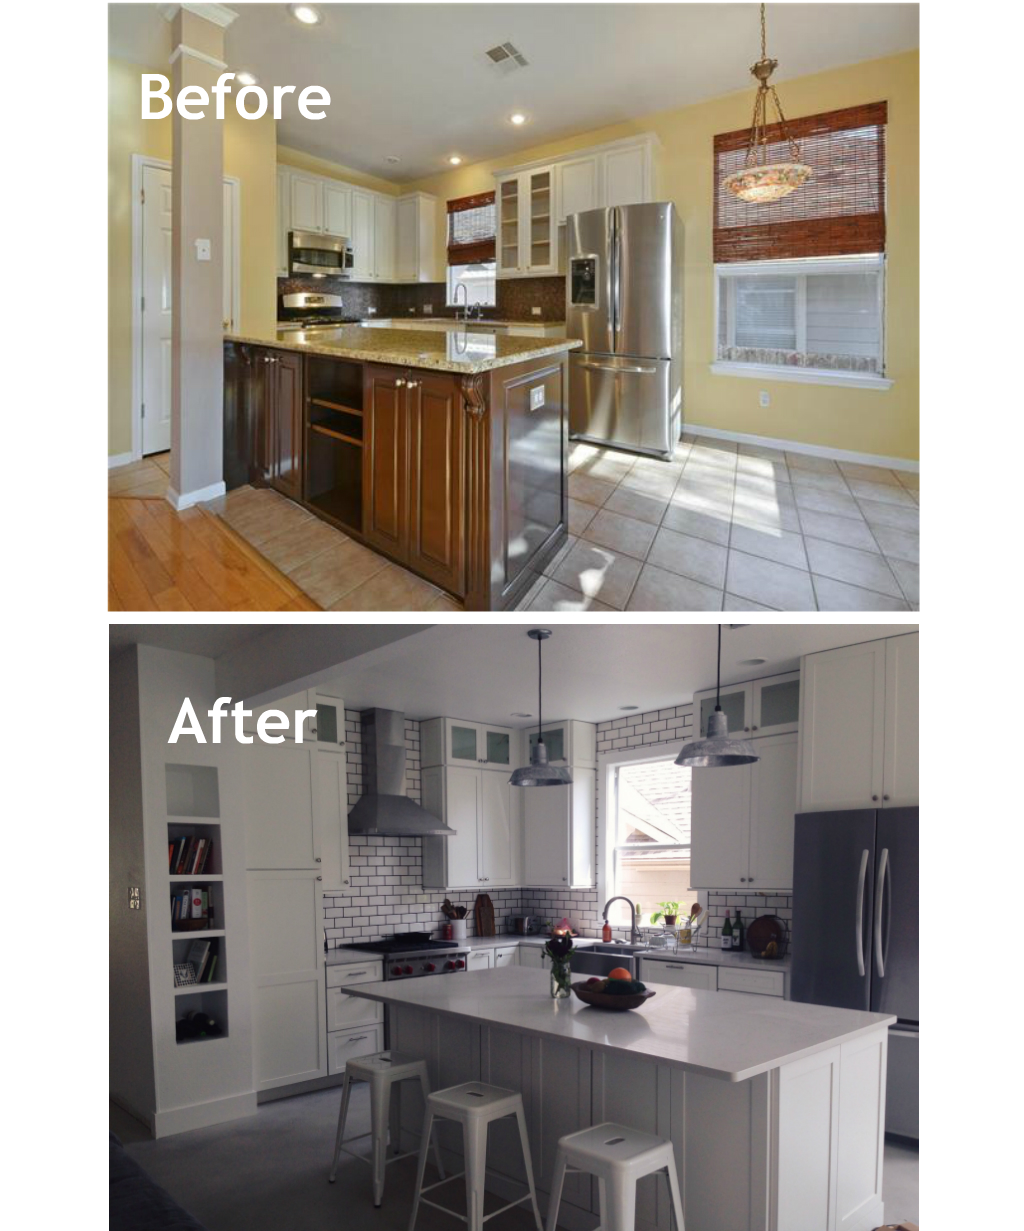 New Kitchen Before And After: My New Home Renovations: Kitchen Before & After Pictures